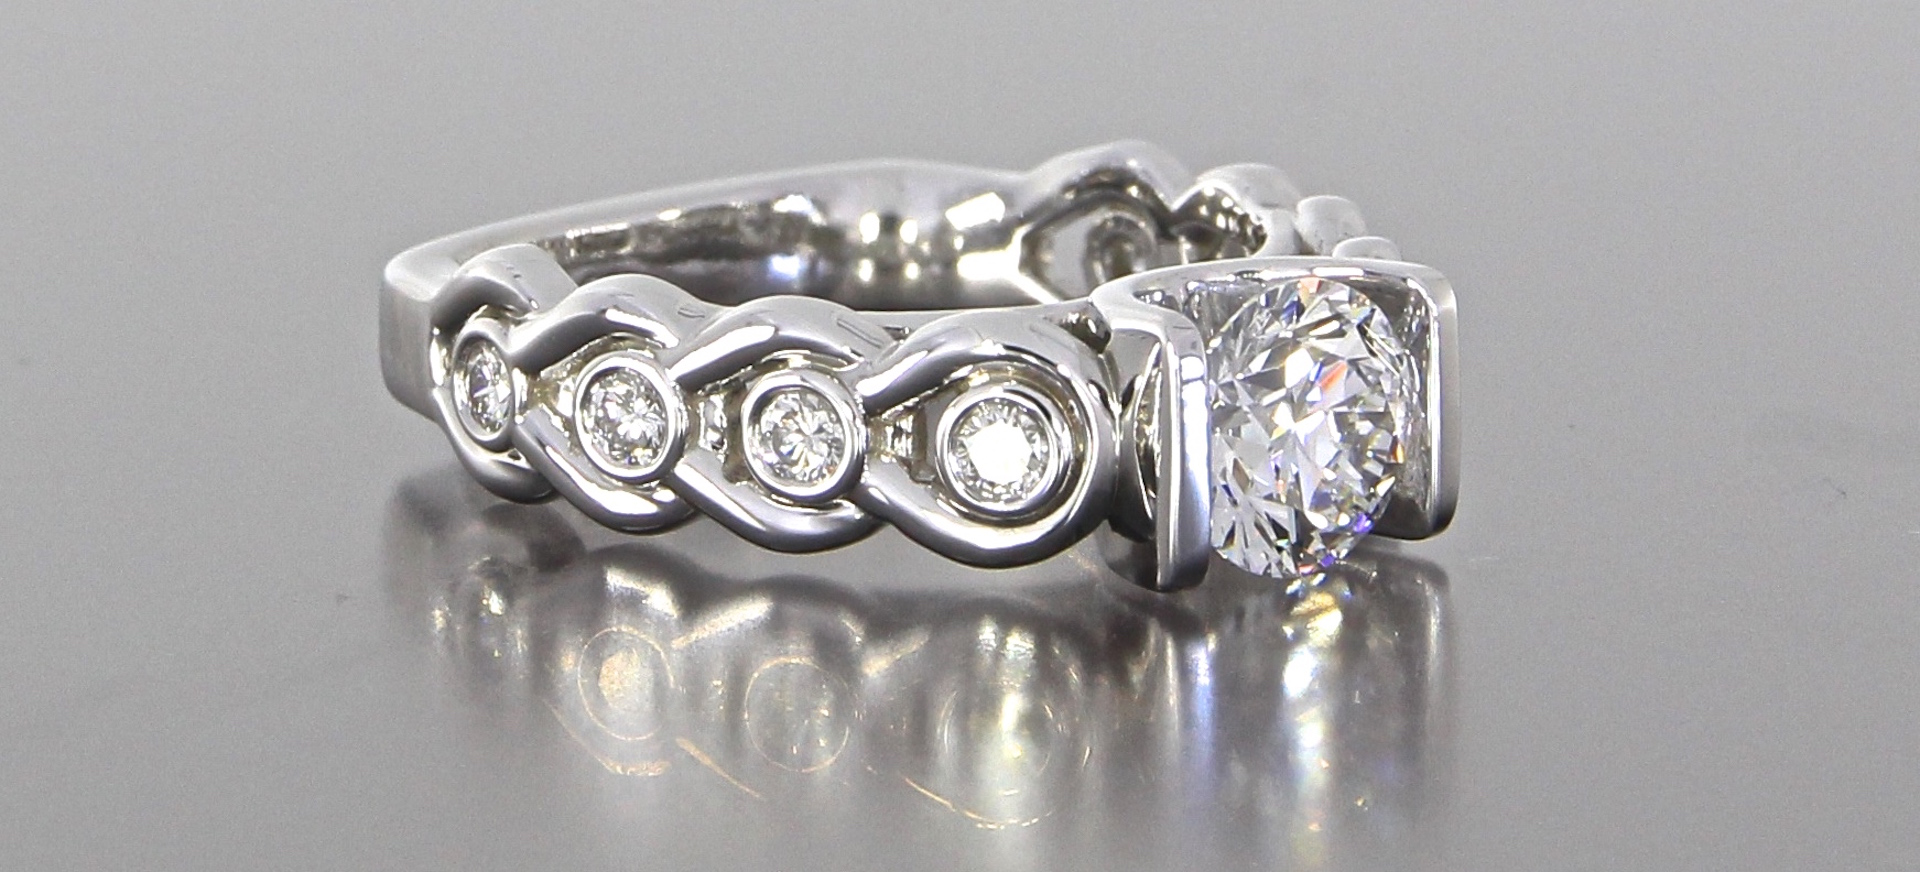 side-view-unique-round-diamond-modern-engagement-ring-craft-revival-jewelry-store-grand-rapids